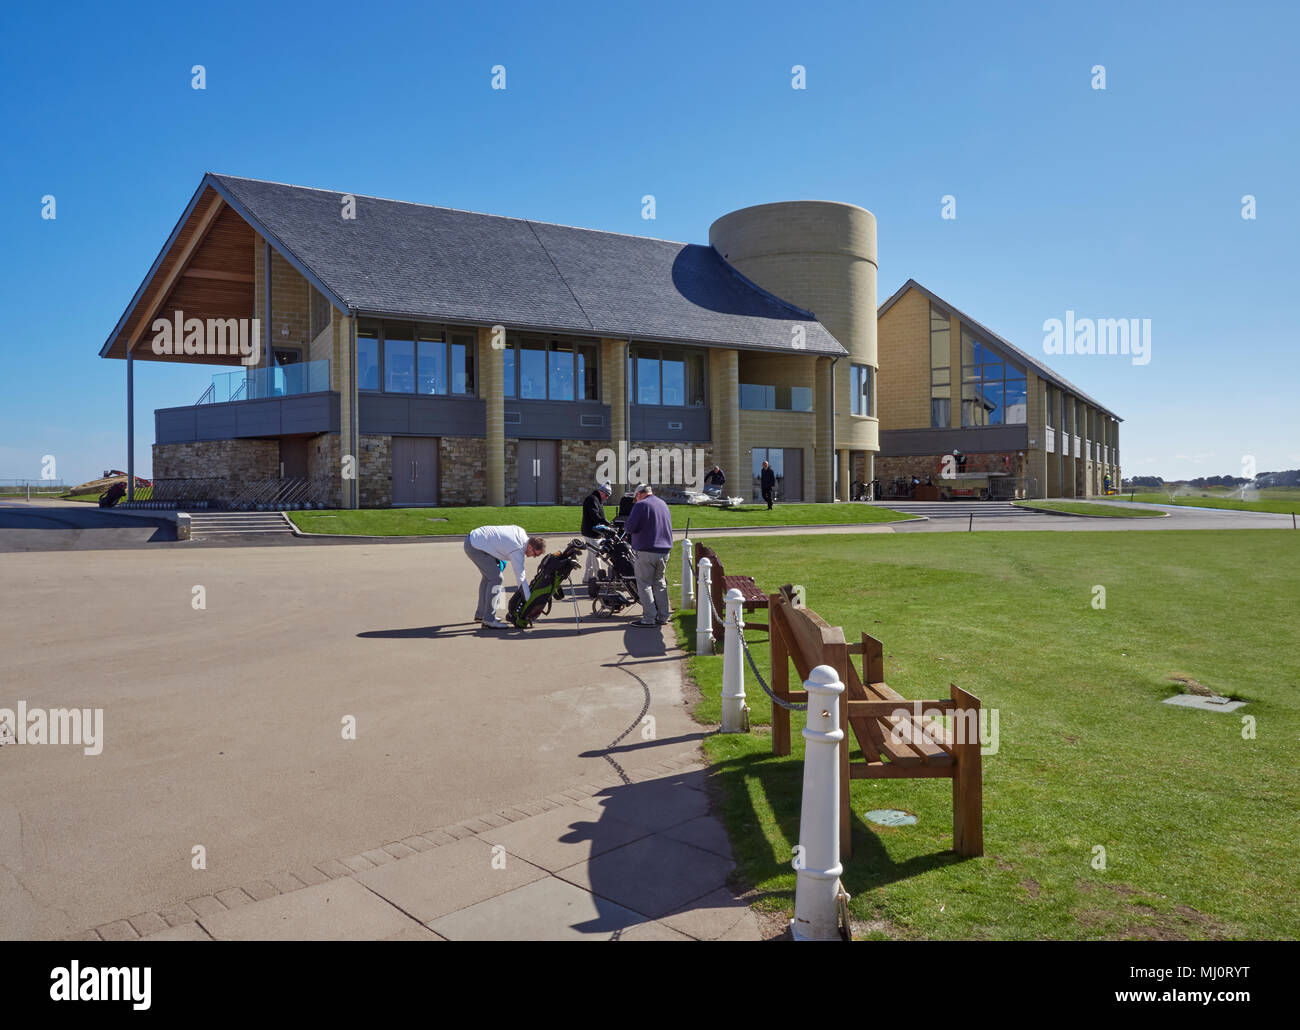 Golfers getting ready to play in front of the New Carnoustie Golf centre and Clubhouse, at the Open Championship Course at Carnoustie Links, Angus. - Stock Image